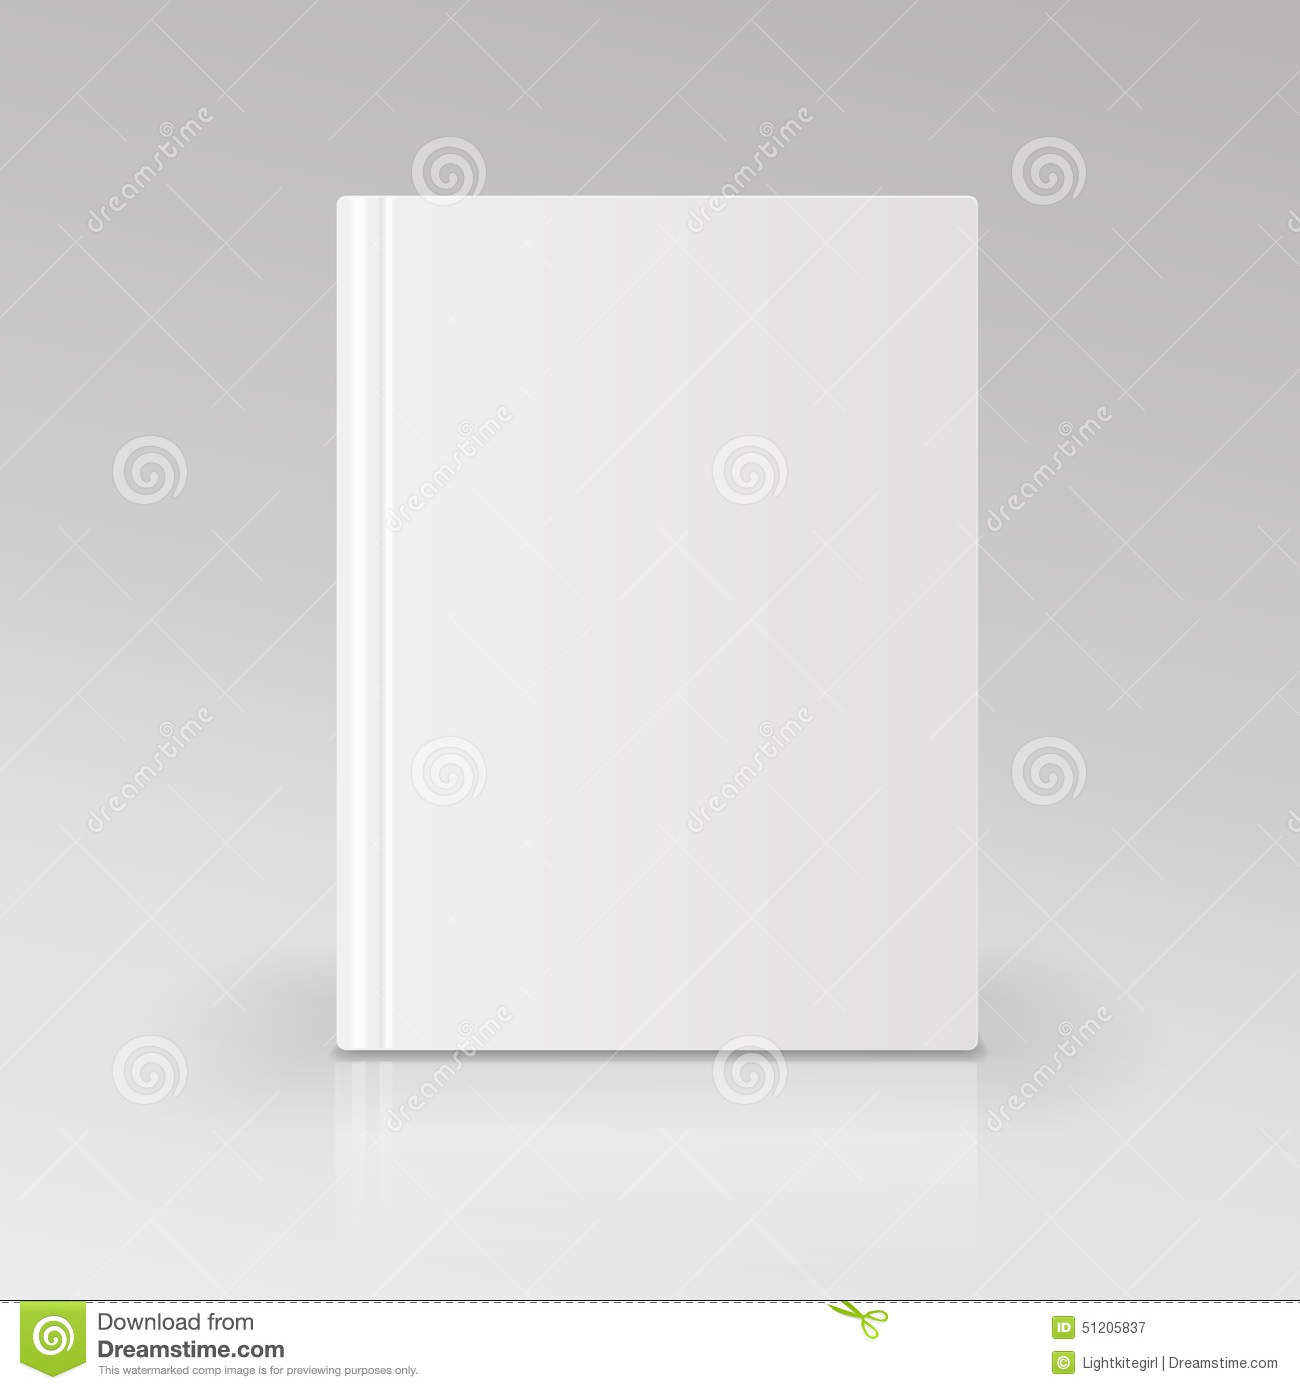 Blank Book Cover Vector Illustration Free ~ Blank book cover vector illustration isolated stock